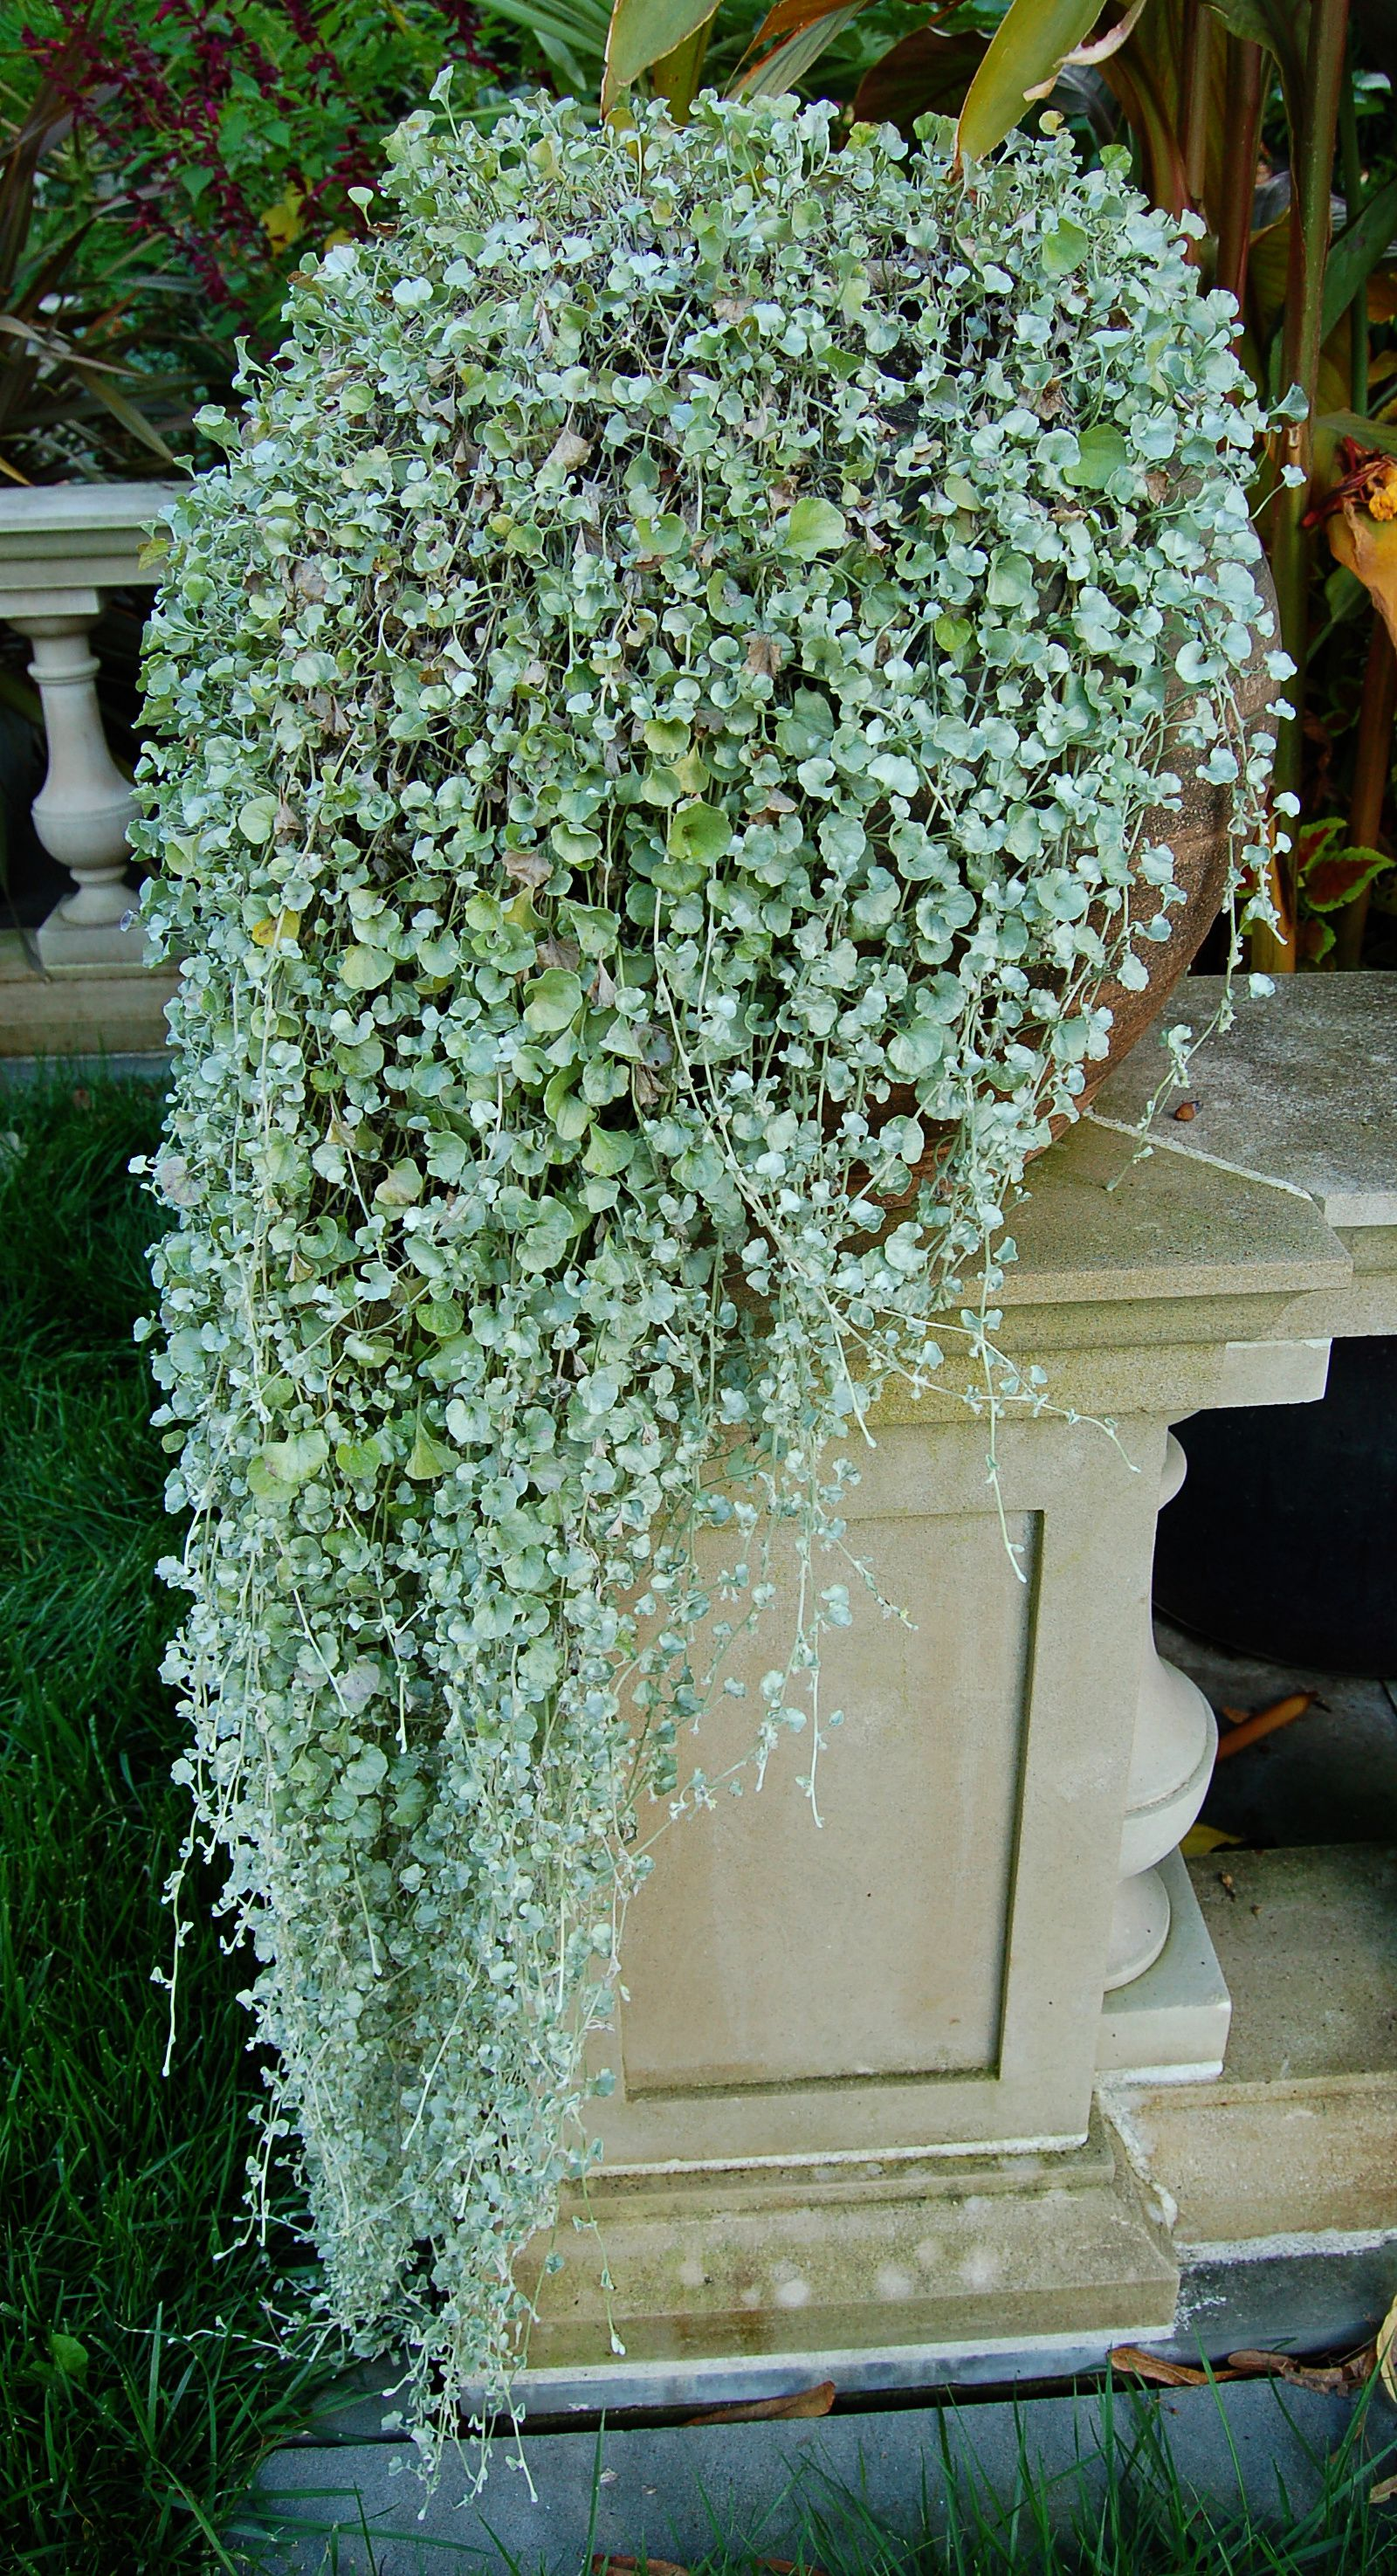 Drought Tolerant Plant Ideas On The Decorating Forum In